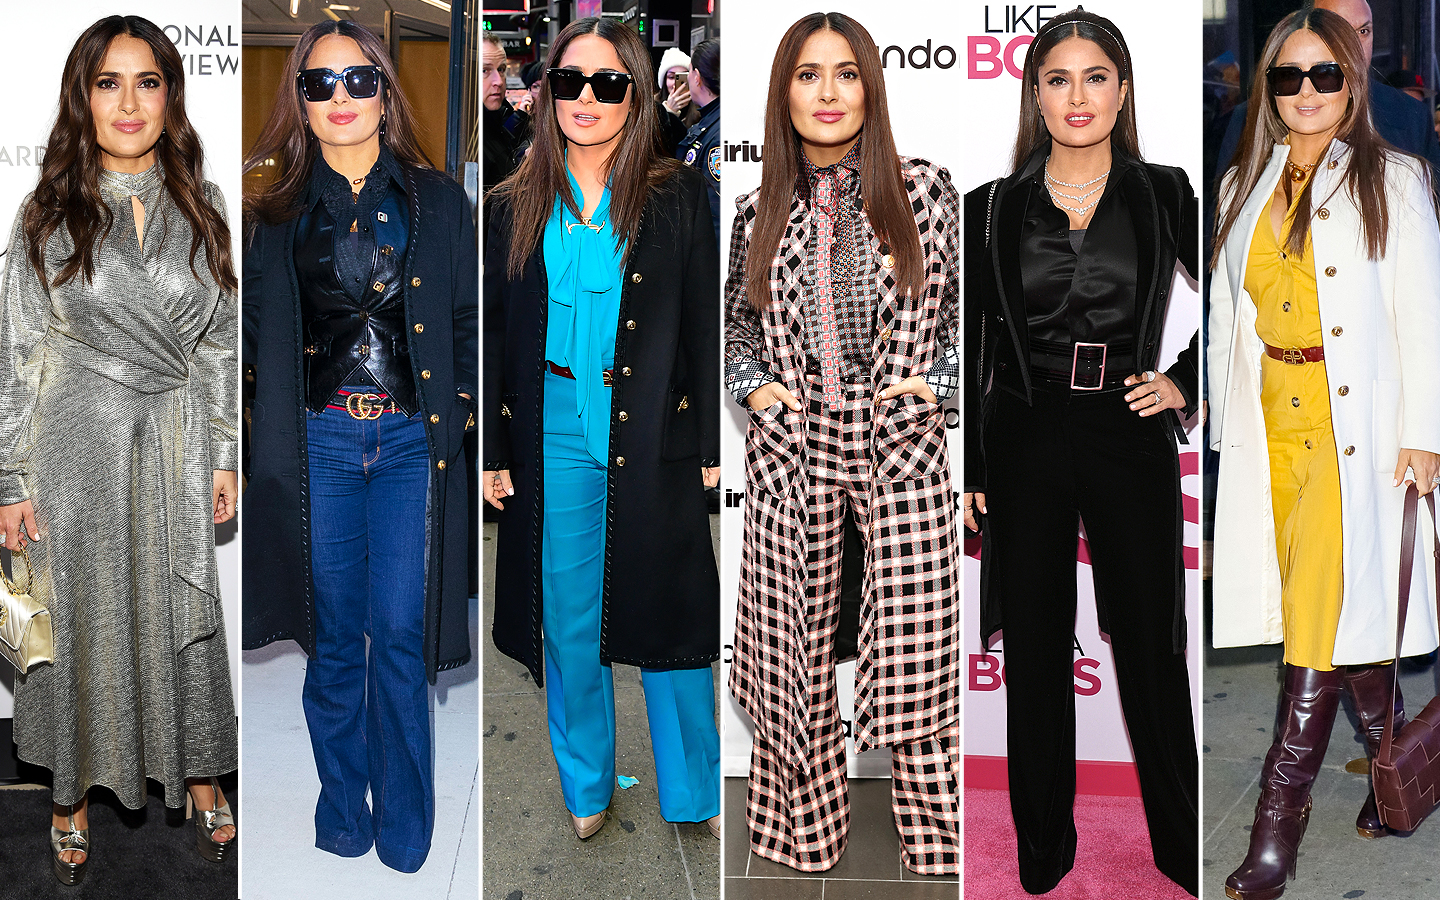 salma hayek outfit changes